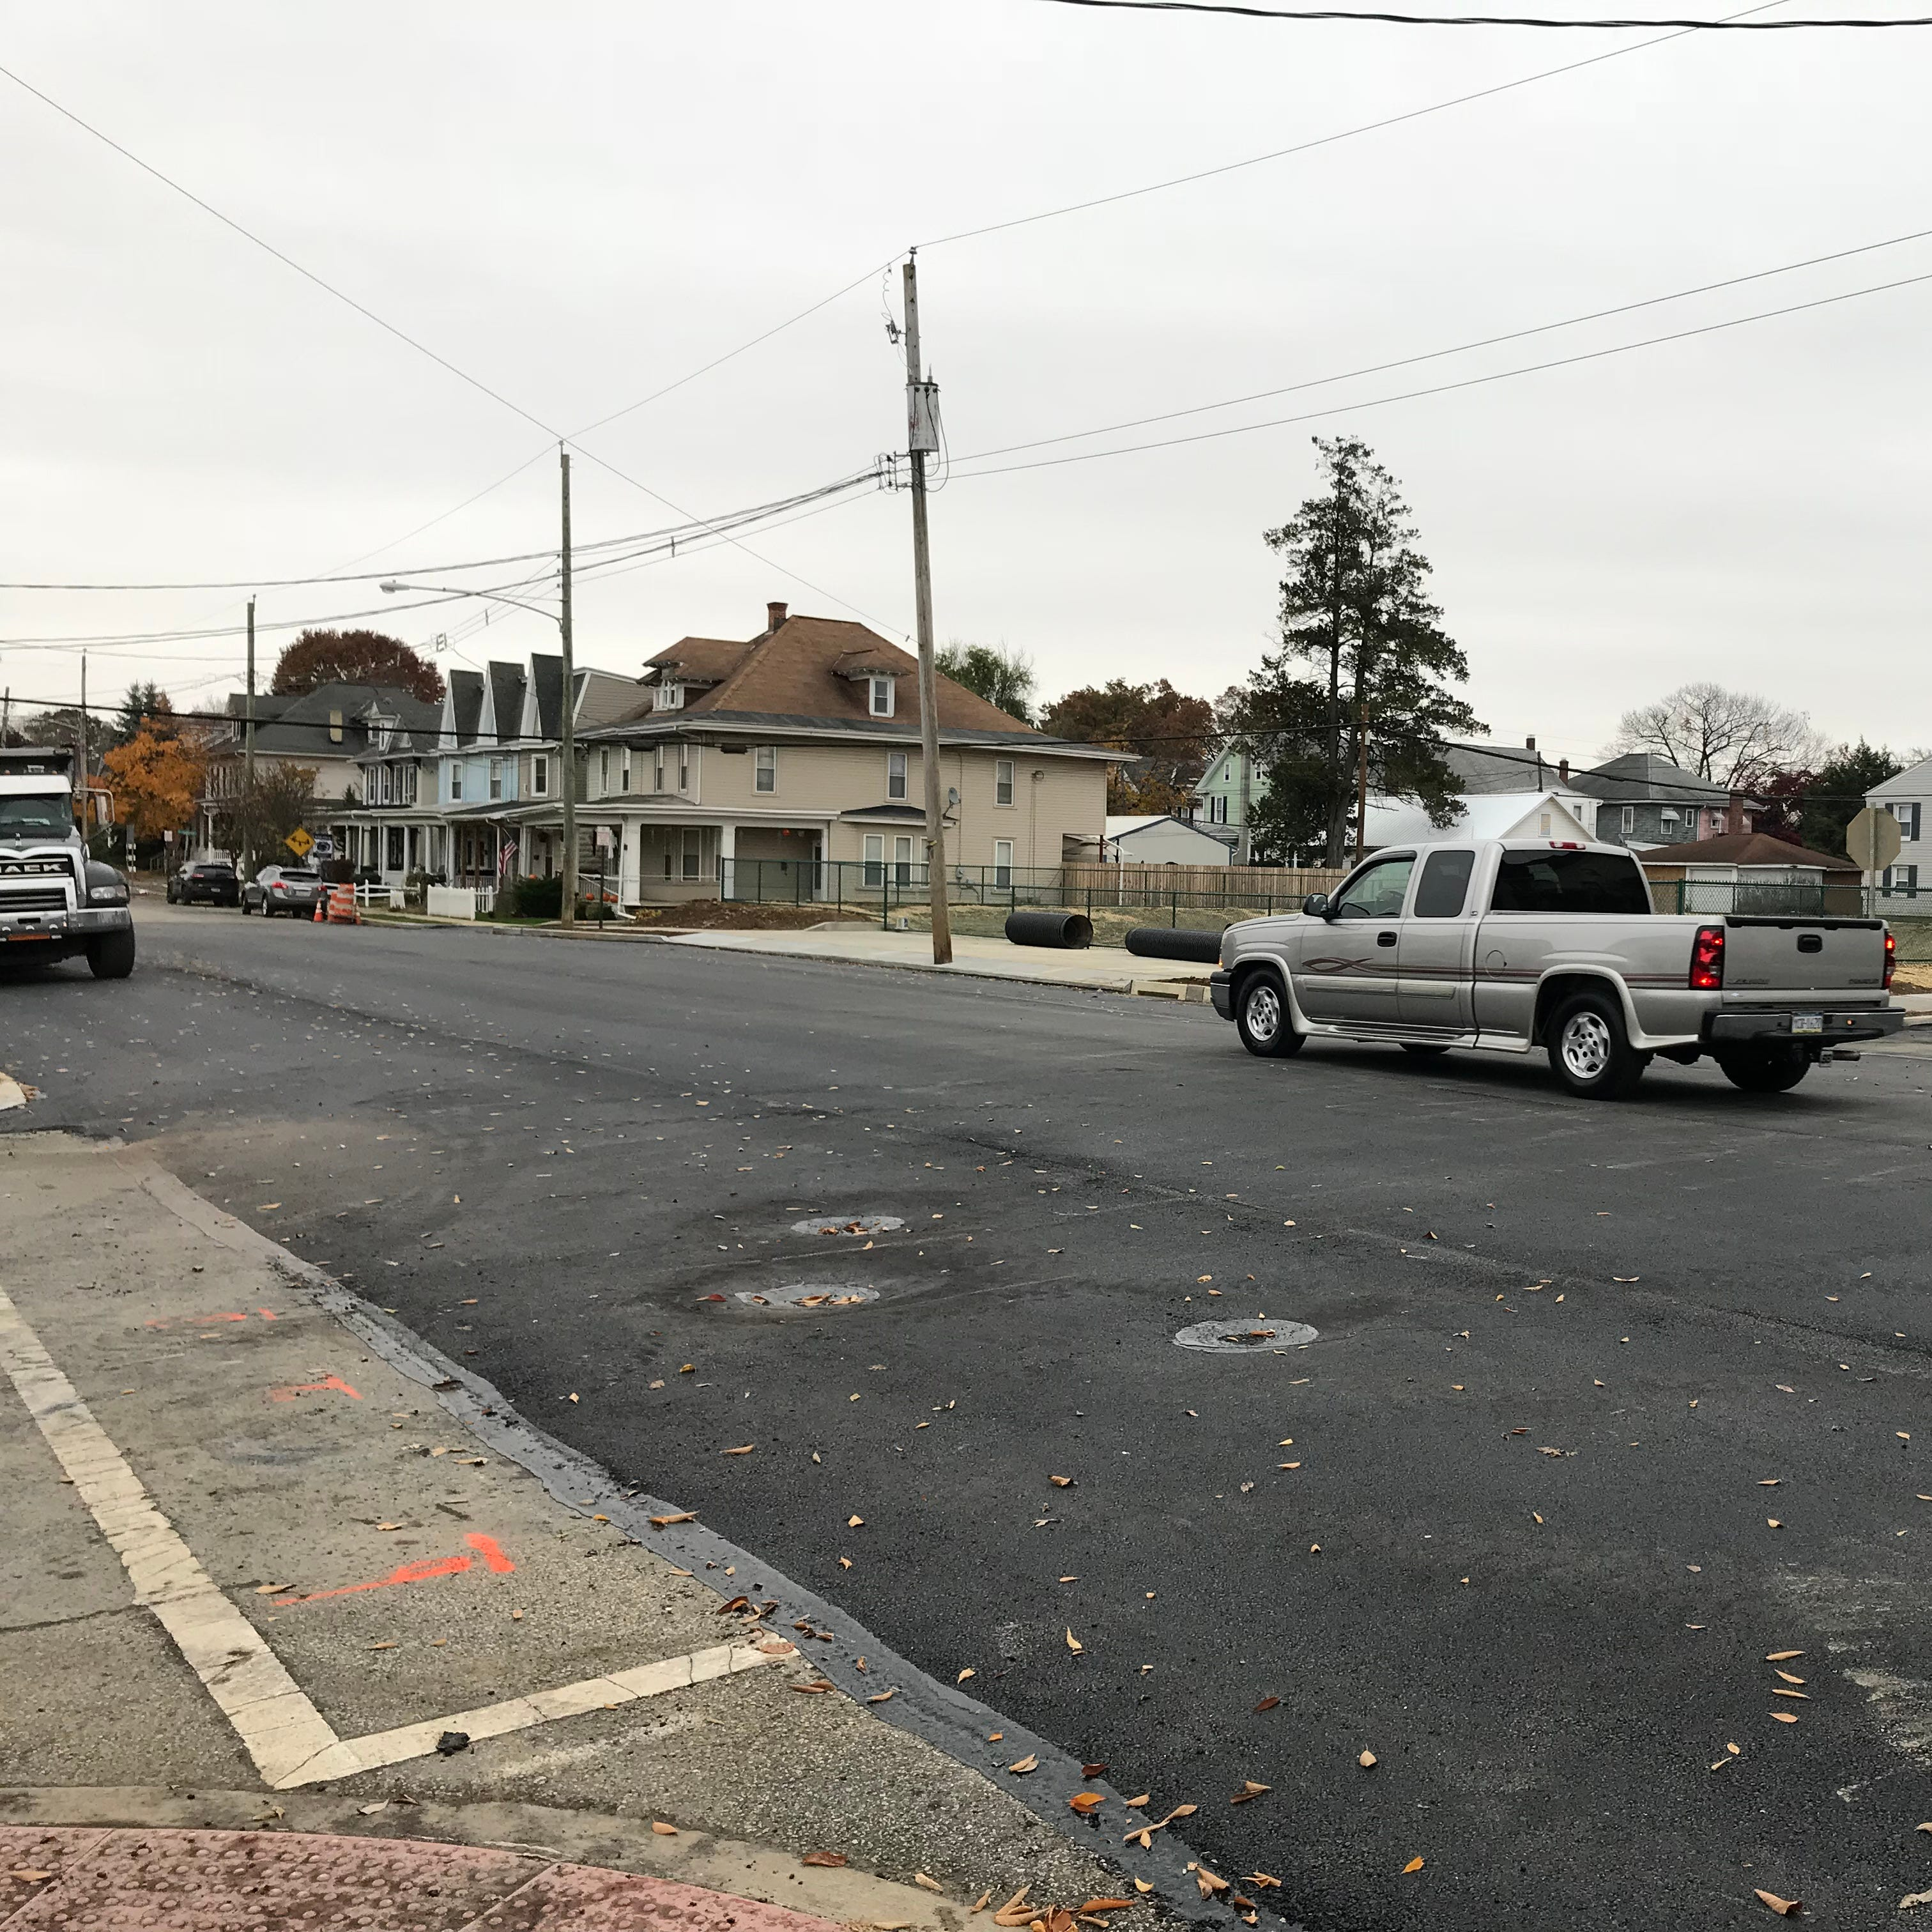 Cherry Street in Palmyra re-opened to traffic after a 4-year closure